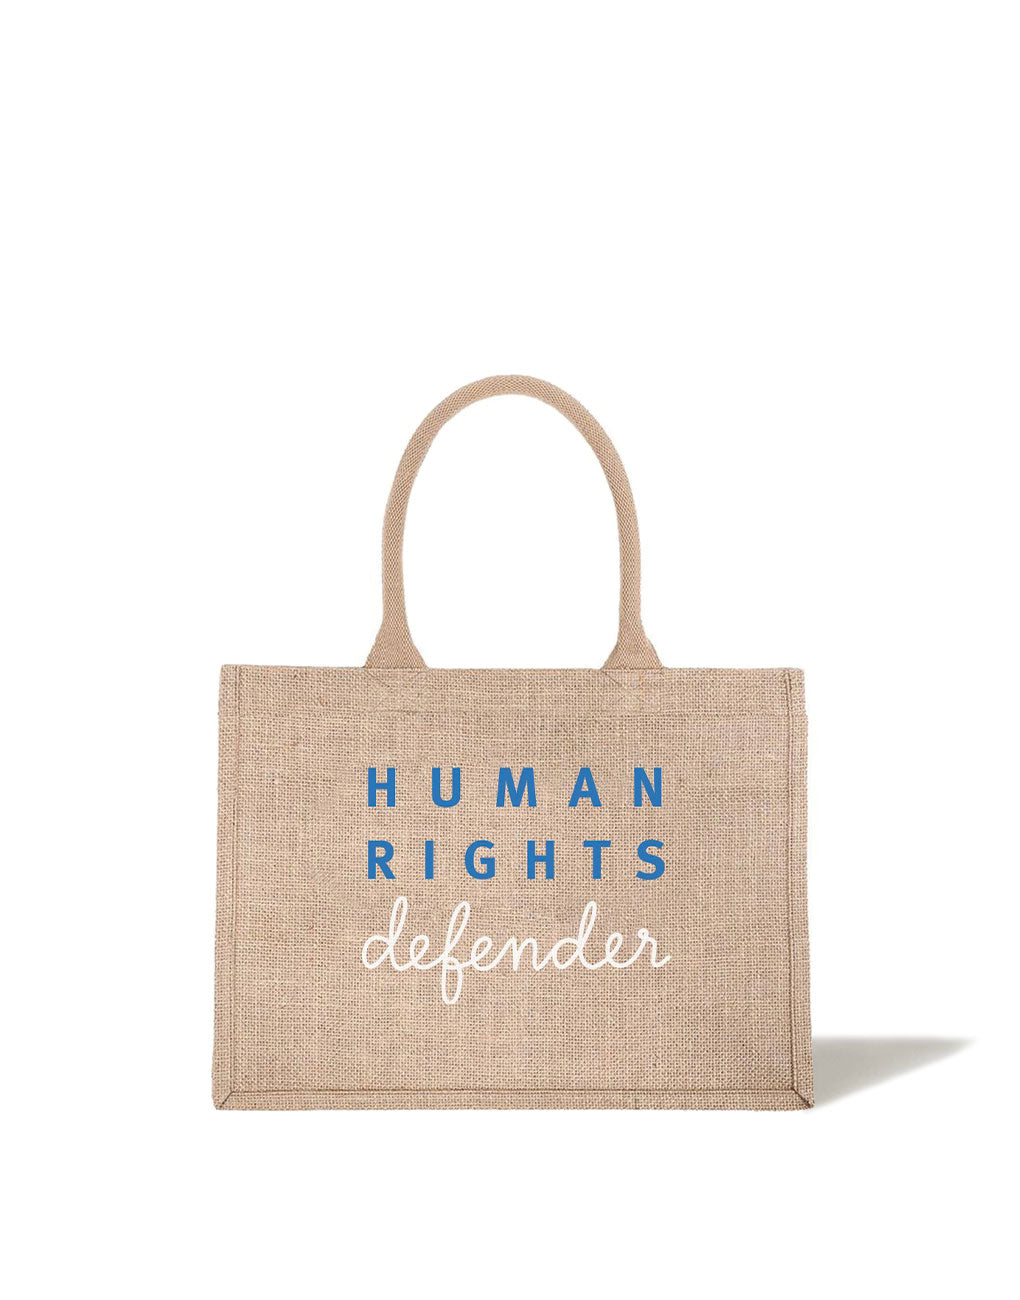 Human Rights Watch Charity Collaboration Tote Bag | The Little Market